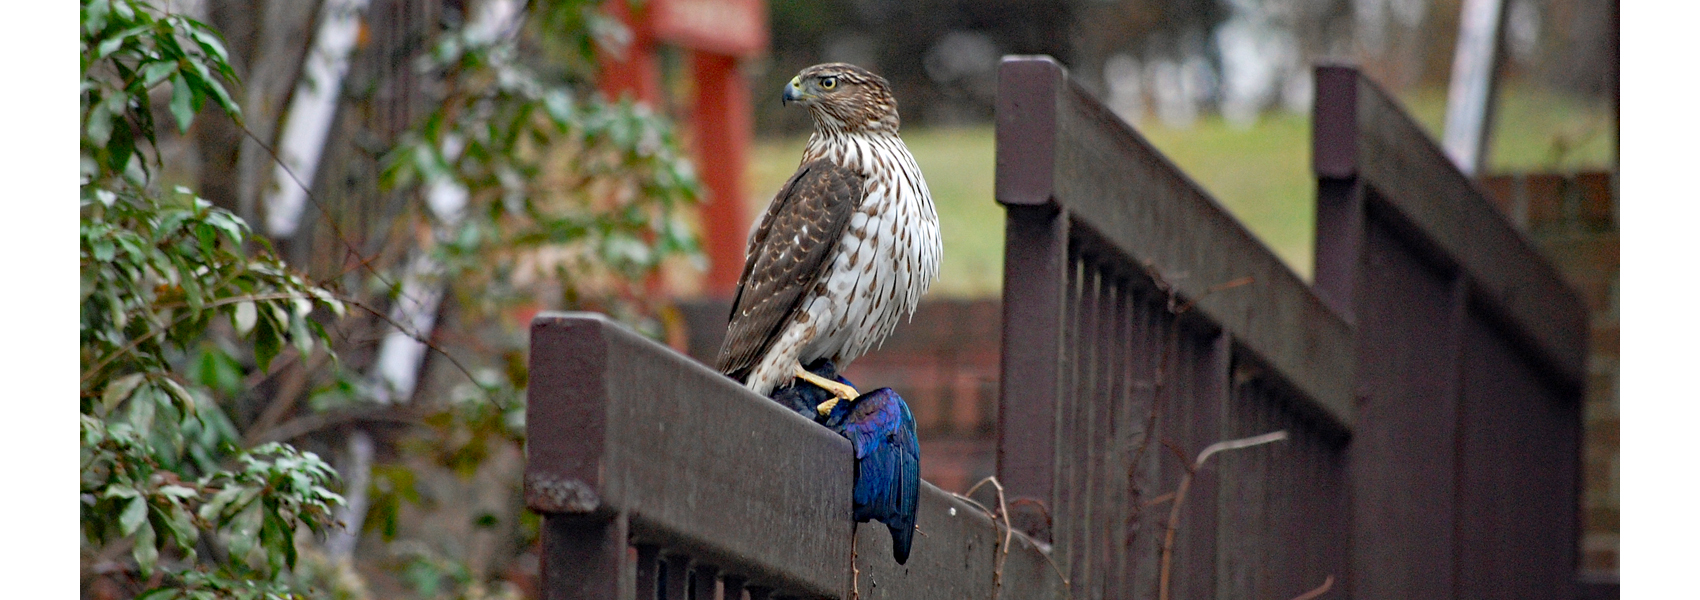 A young Cooper's hawk holding a grackle